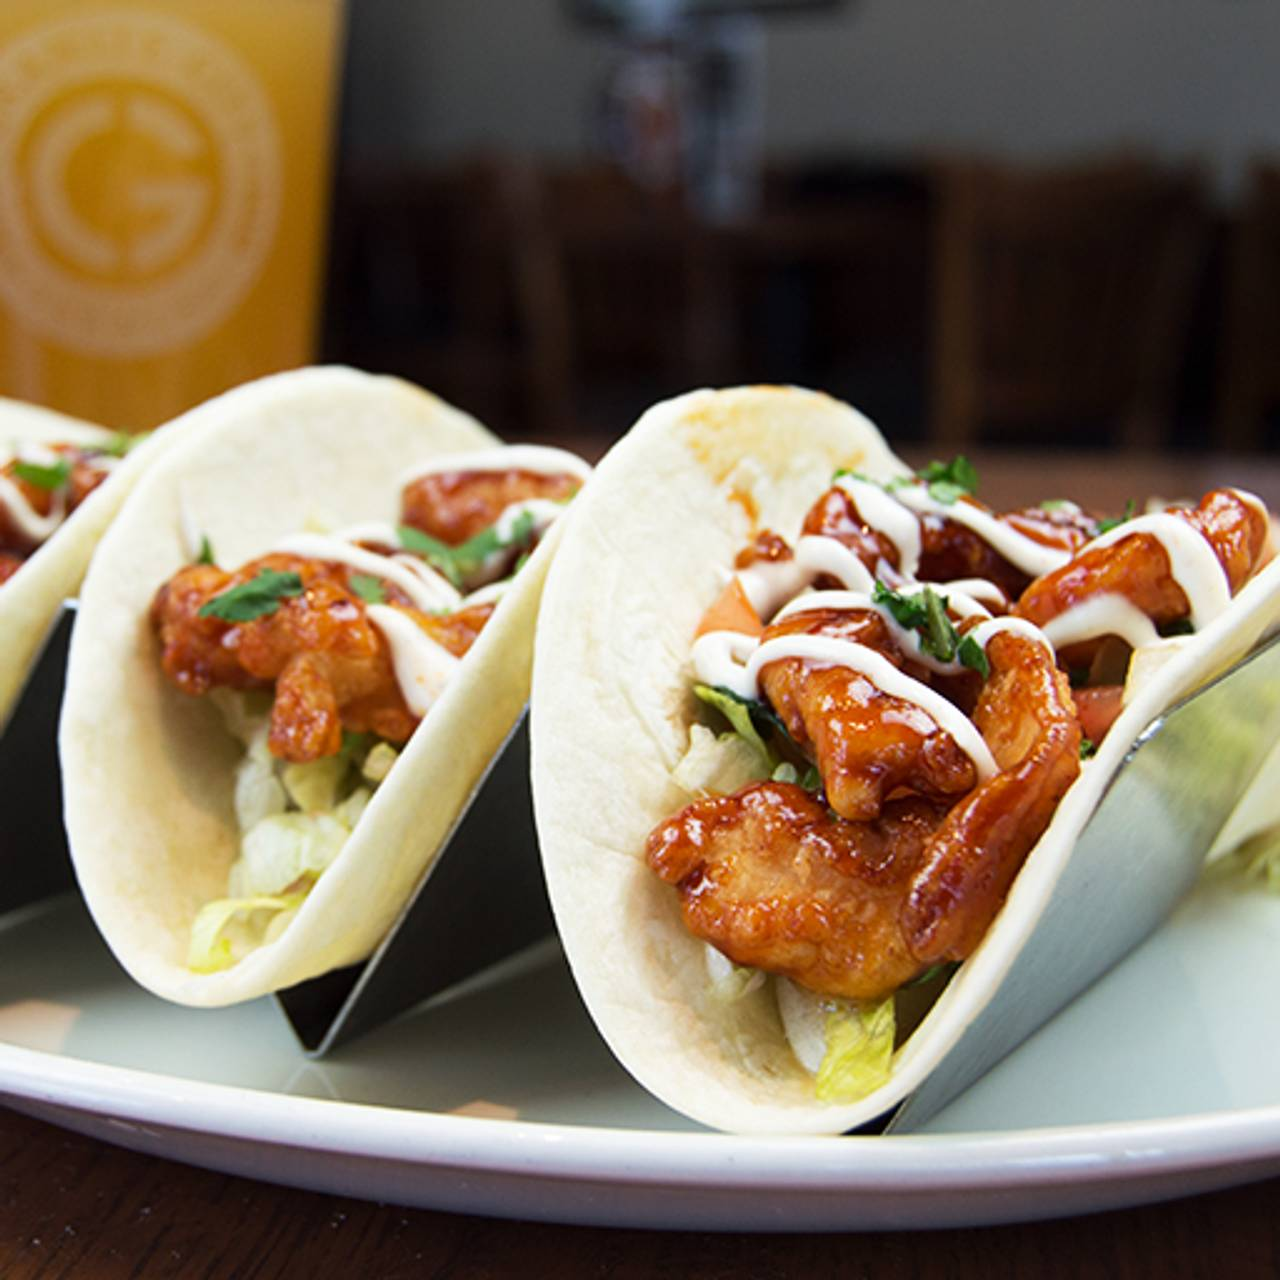 Granite City Food & Brewery - Sioux Falls Restaurant - Sioux Falls